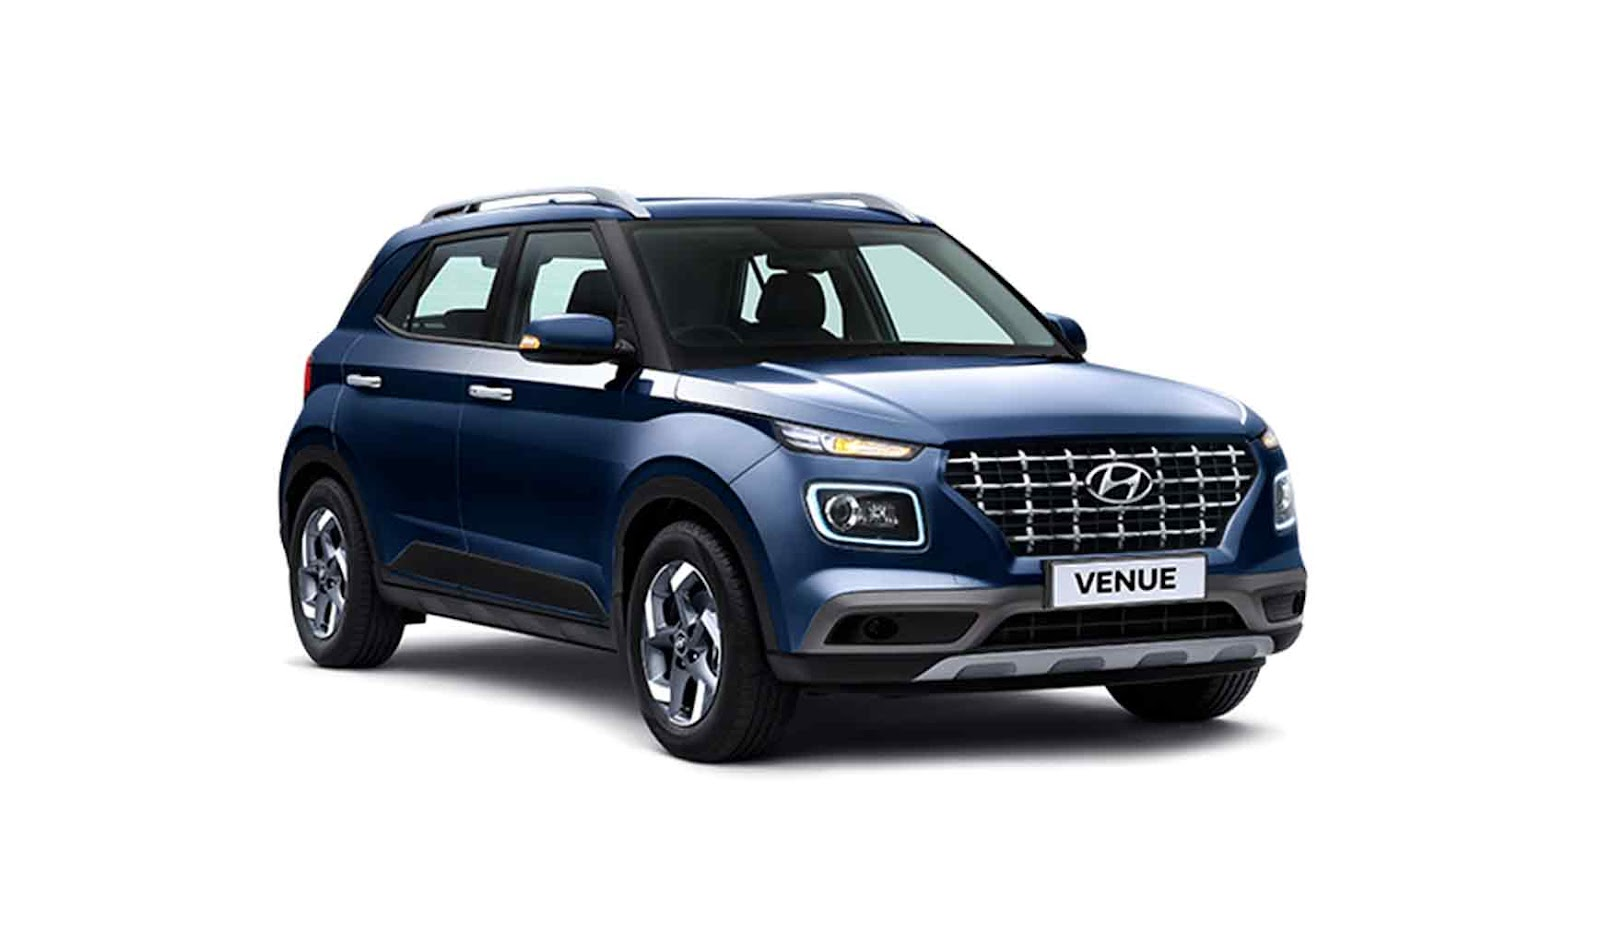 Best Quality Compact SUV in India - Hyundai Venue